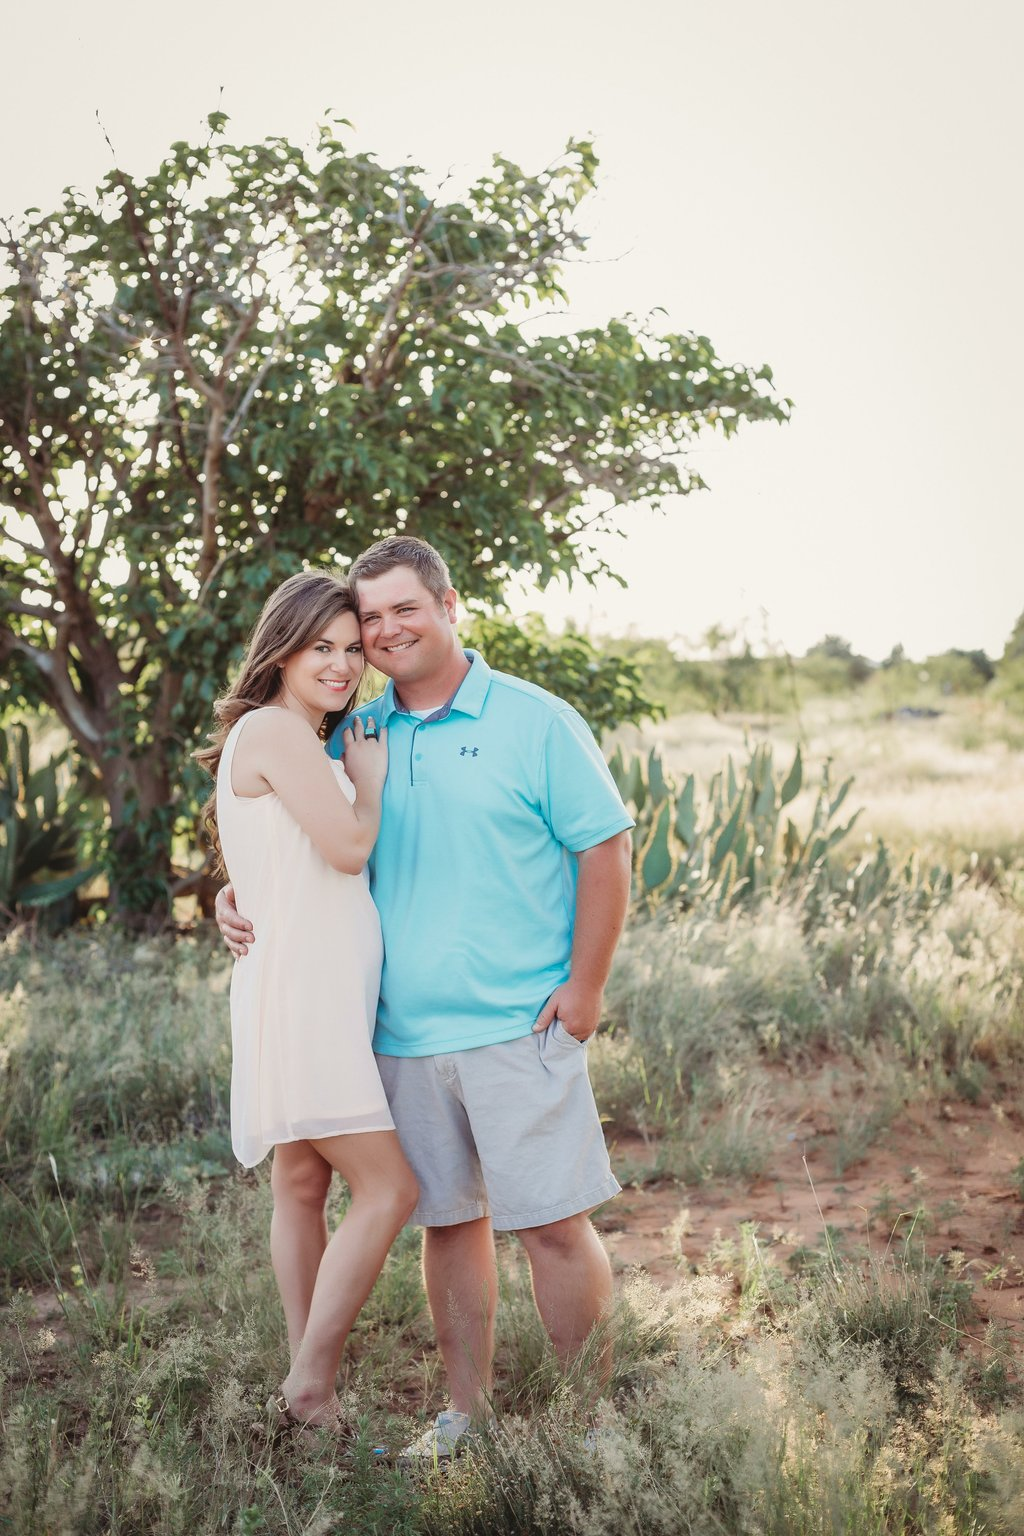 Nizhoni_Photography_Midland_Texas_Outdoor_Lifestyle_Family_session (2).jpg